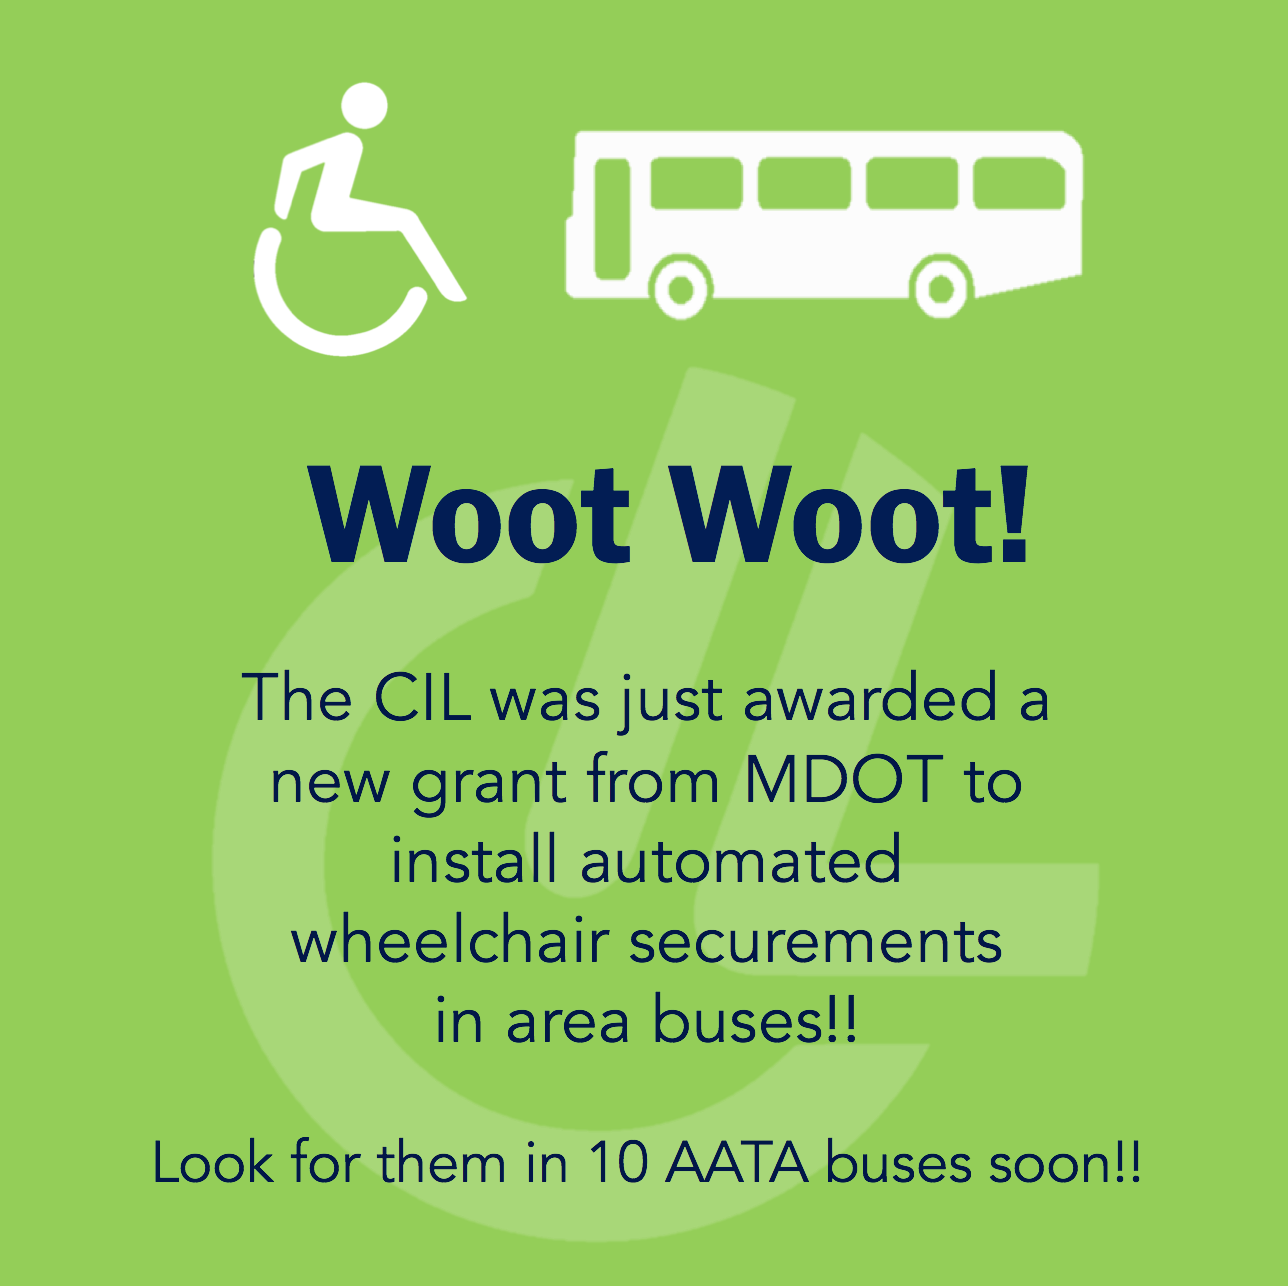 Look for automated wheelchair securements on buses soon!